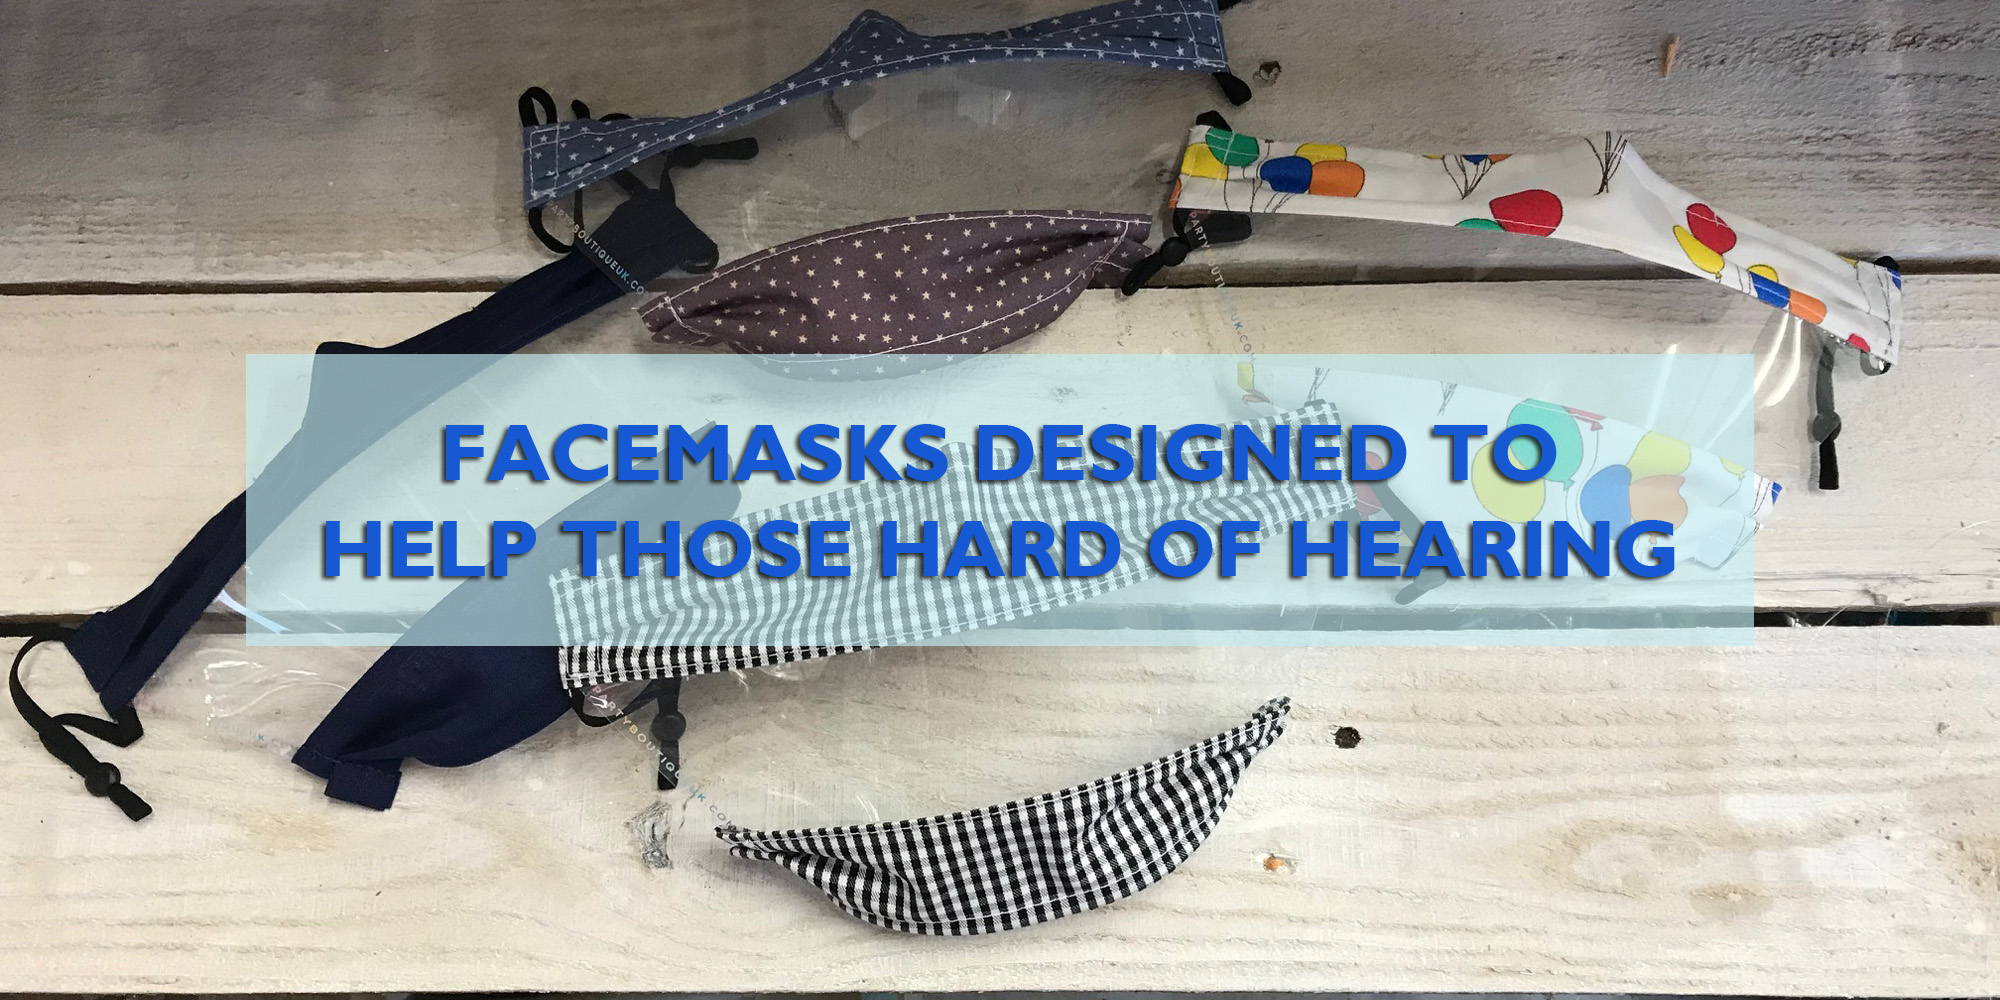 Face masks designed for the hard of hearing